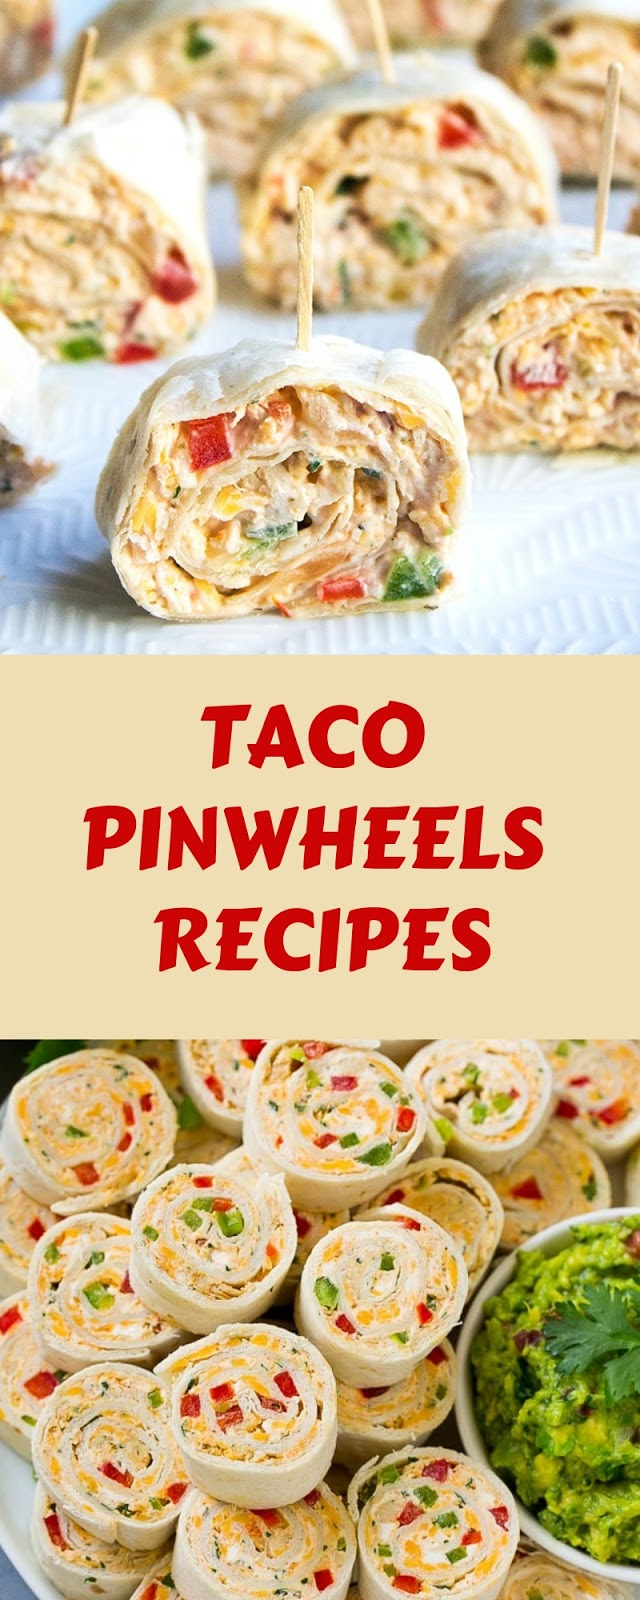 TACO PINWHEELS RECIPES